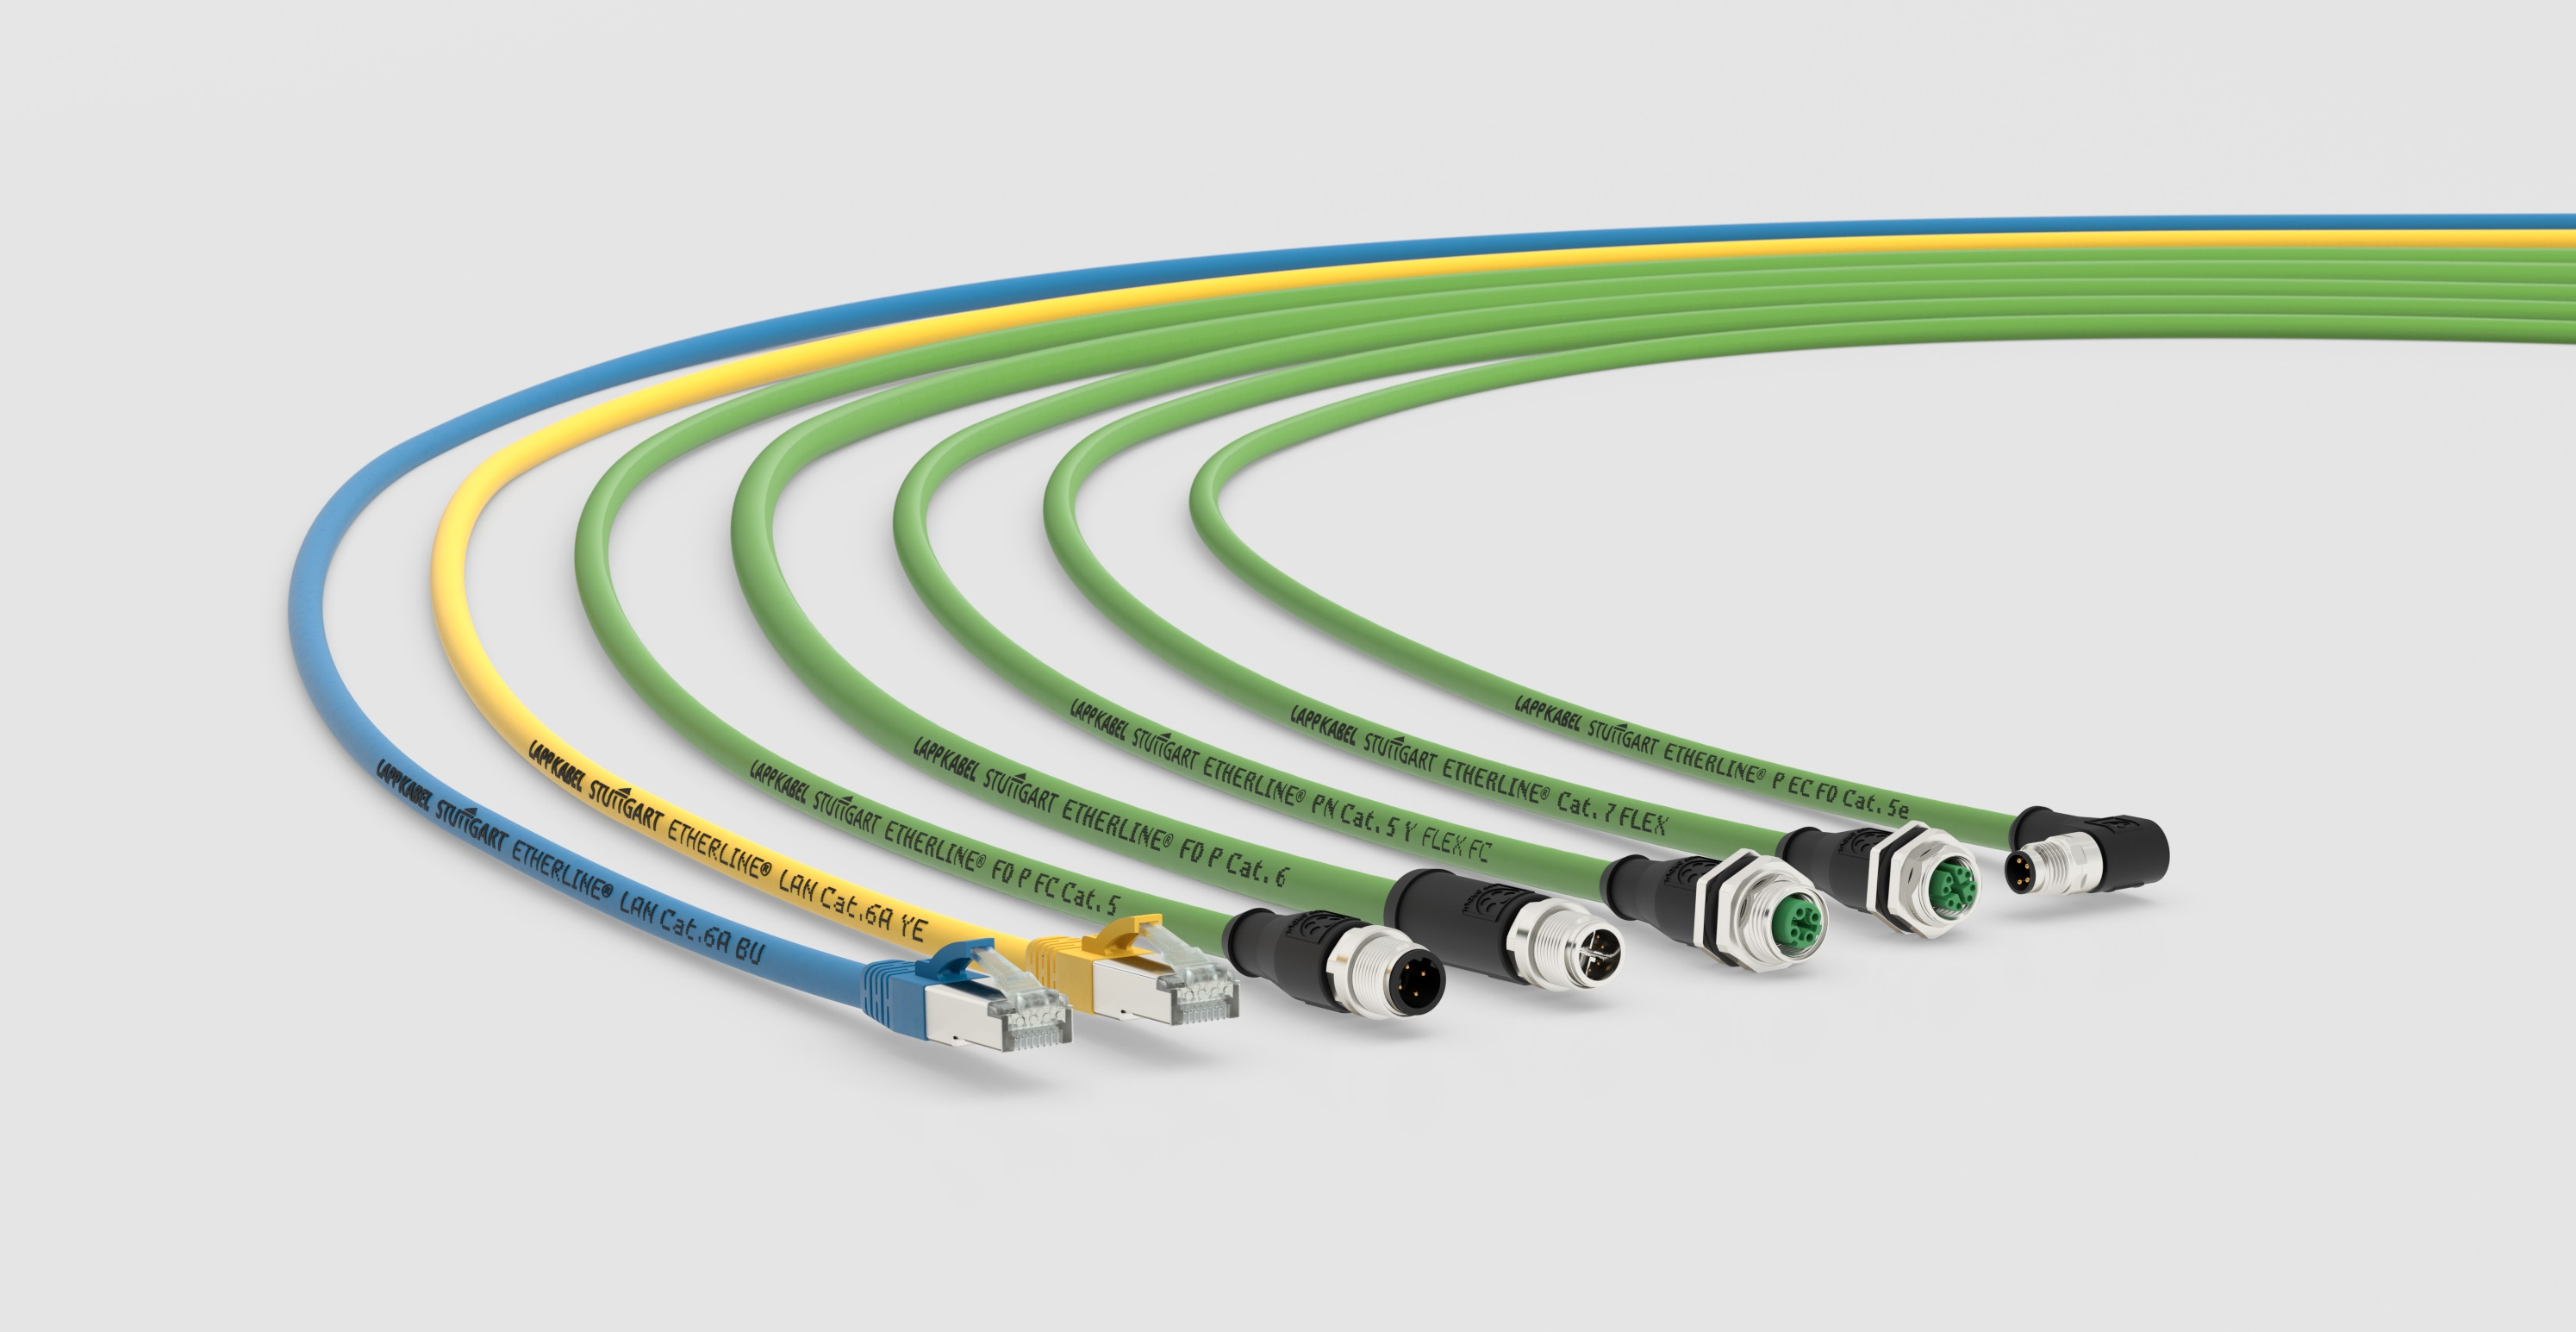 Patchcord Image webpage